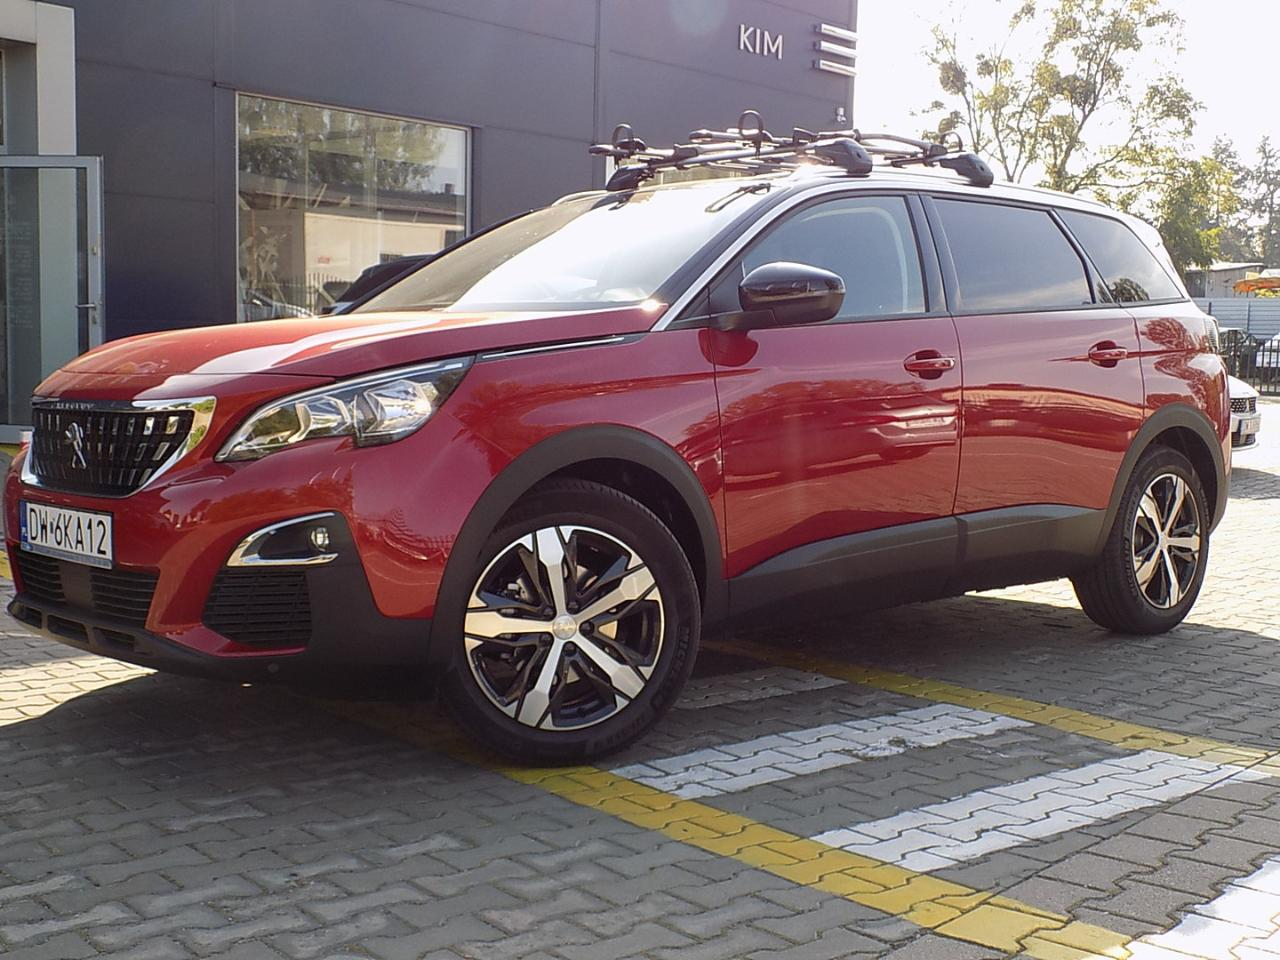 Peugeot 5008 1.2 PureTech Active S&S EAT8